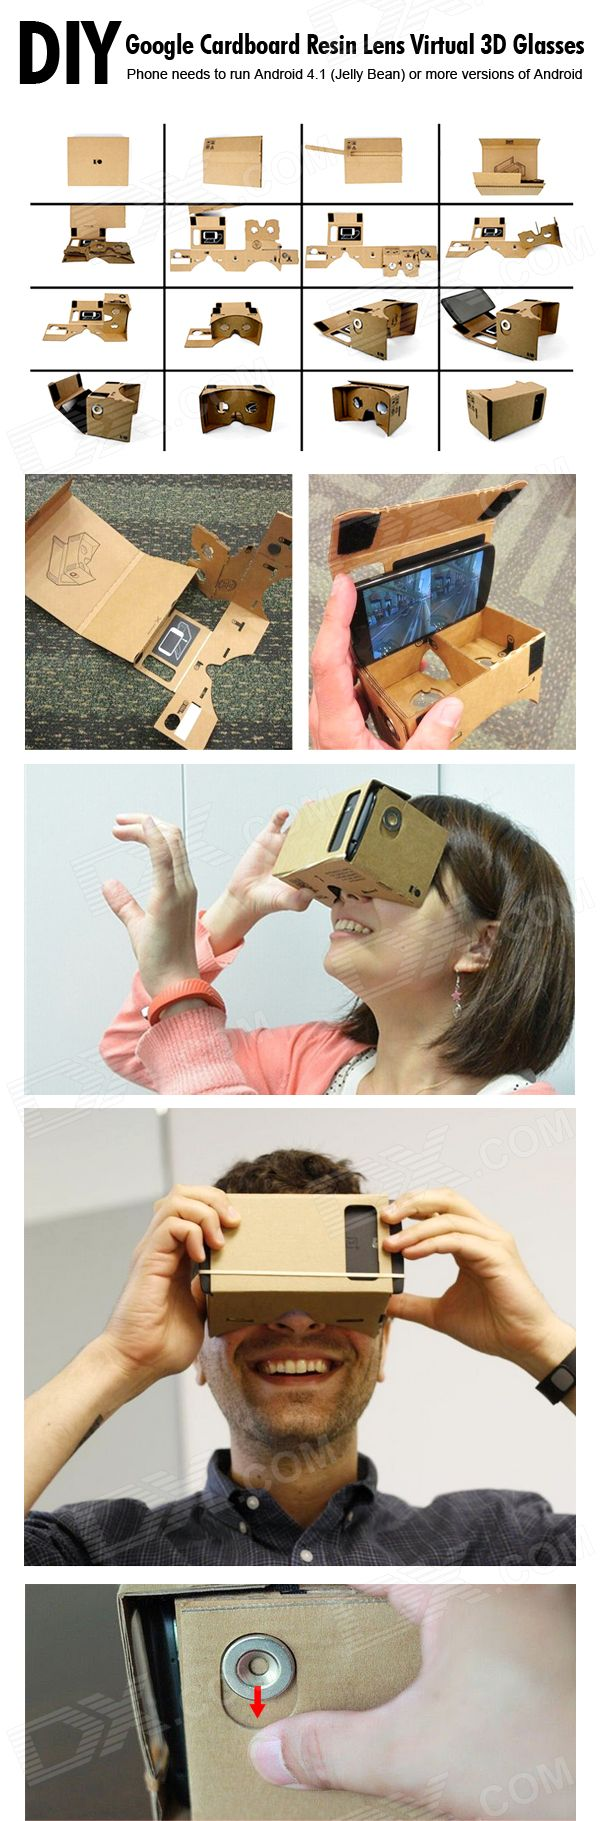 "NEJE ZB02 DIY Google Cardboard + Resin Lens Virtual 3D Glasses w/ NFC for 4~7"" Cellphones - Brown - Free Shipping - DealExtreme"